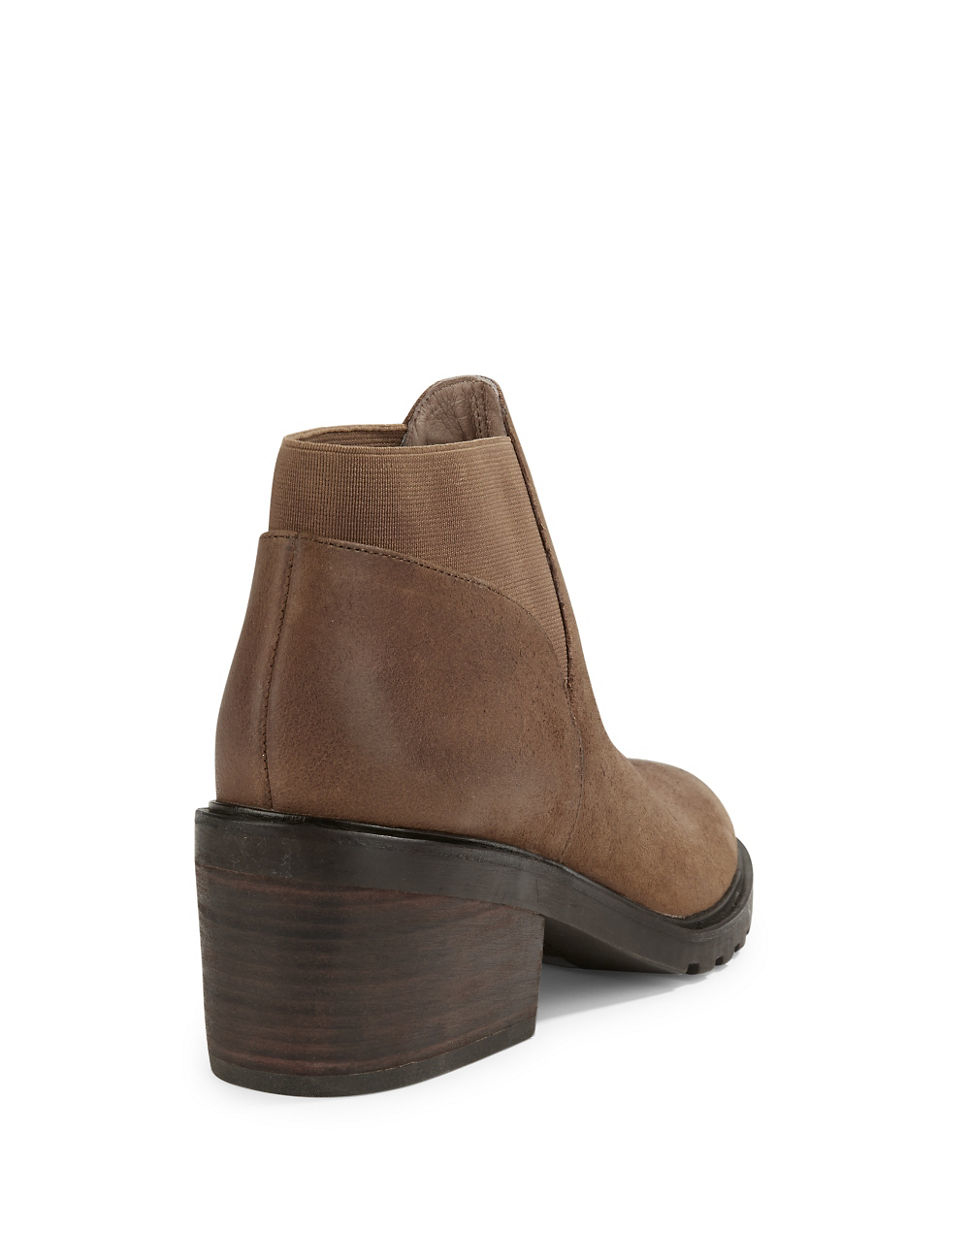 Eileen fisher Leather Ankle Boots in Brown